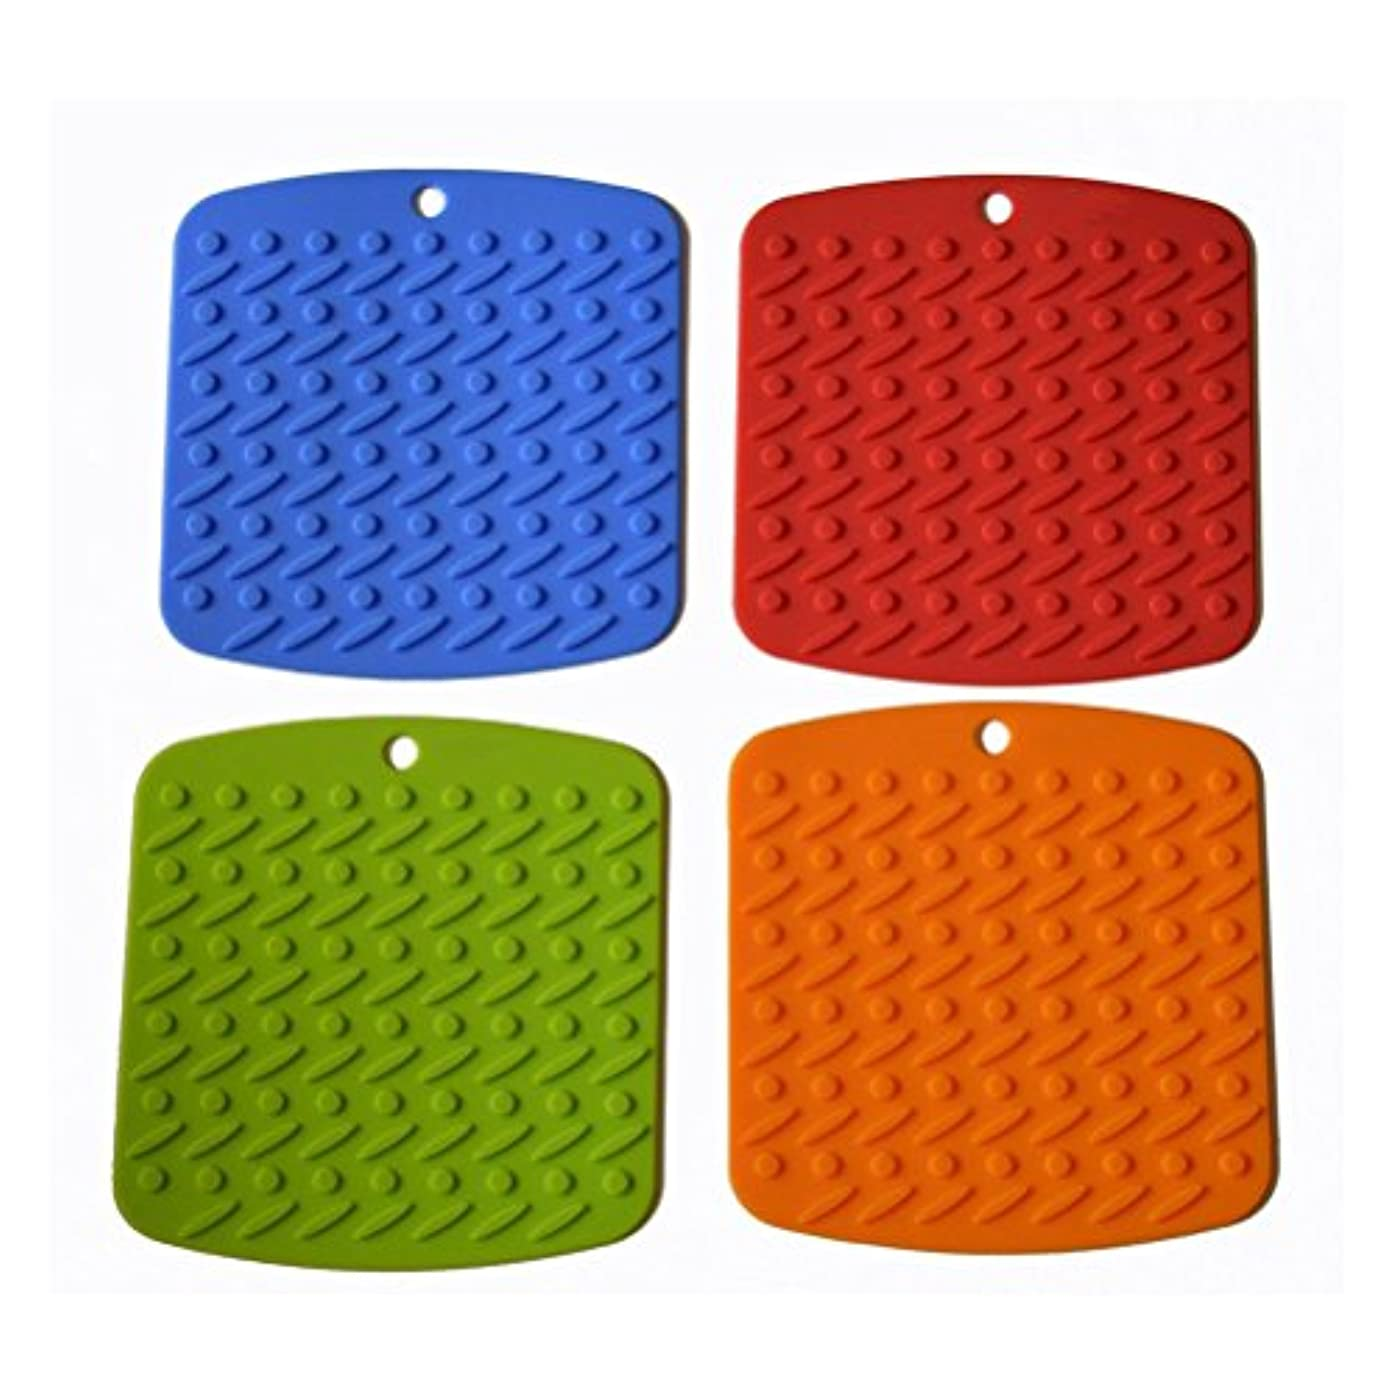 NUOLUX Household Silicone Trivets Pot Holder Coaster Placemat Hot Pad-4 Colors